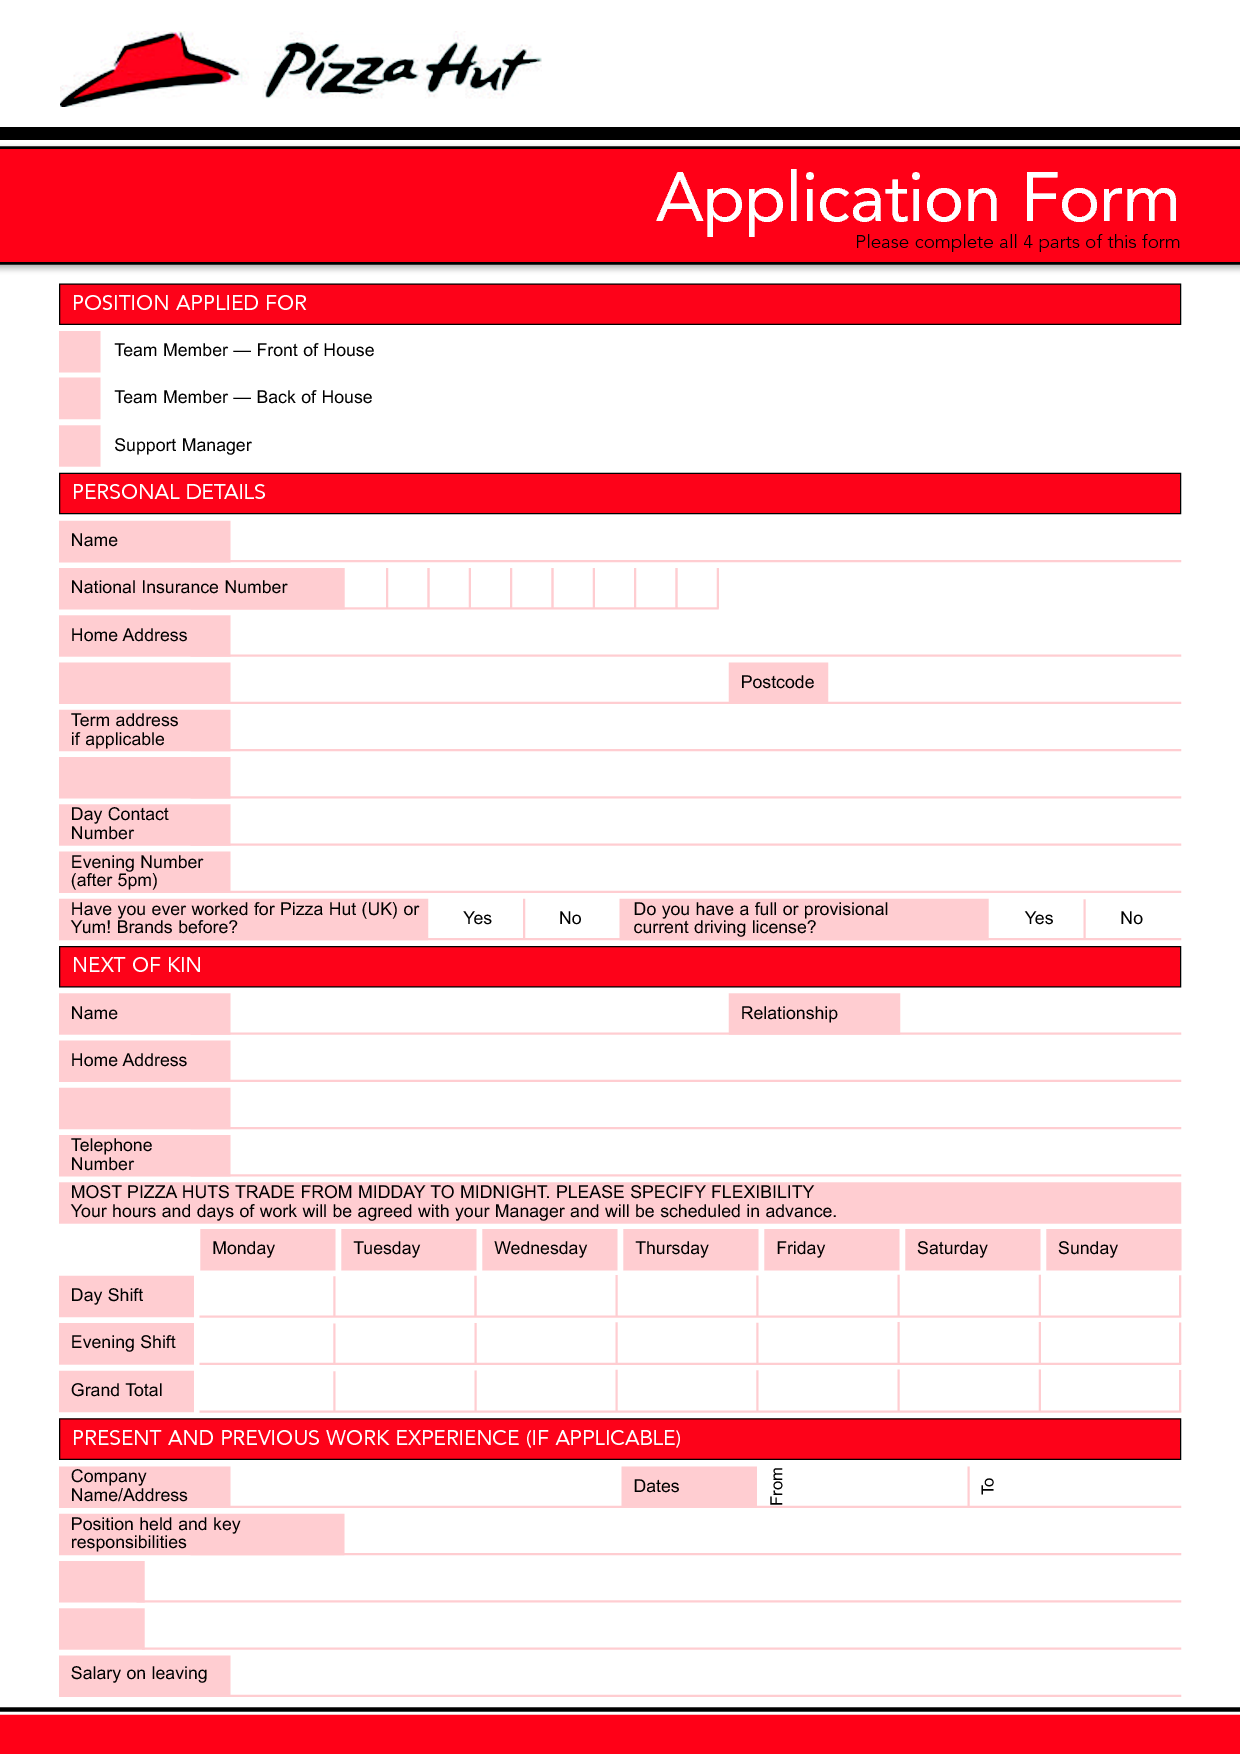 Application Form For Pizza Hut Pdf Application Form Pizza Hut